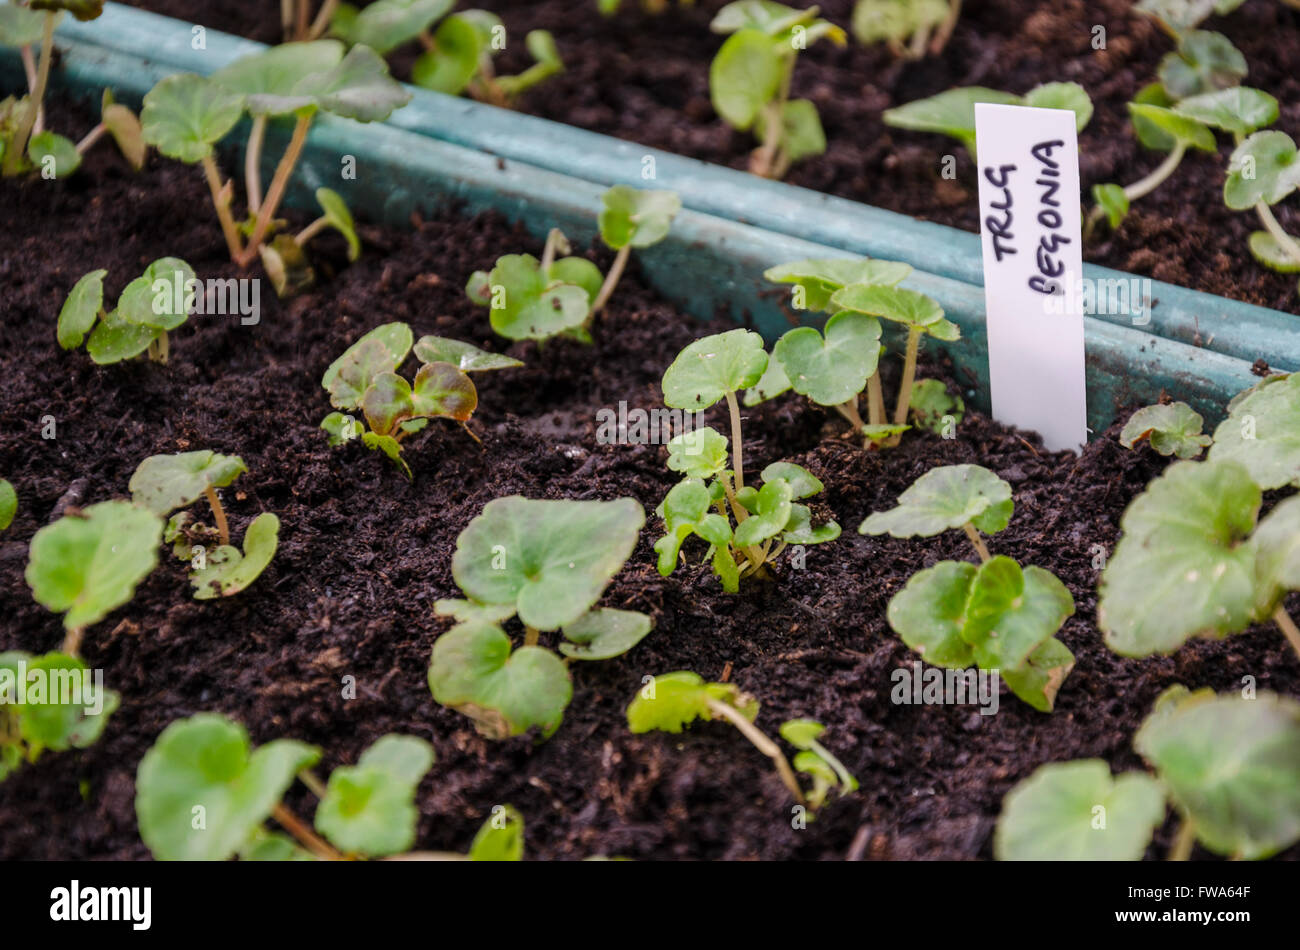 trailing-begonia-seedlings-growing-in-a-seed-tray-FWA64F.jpg